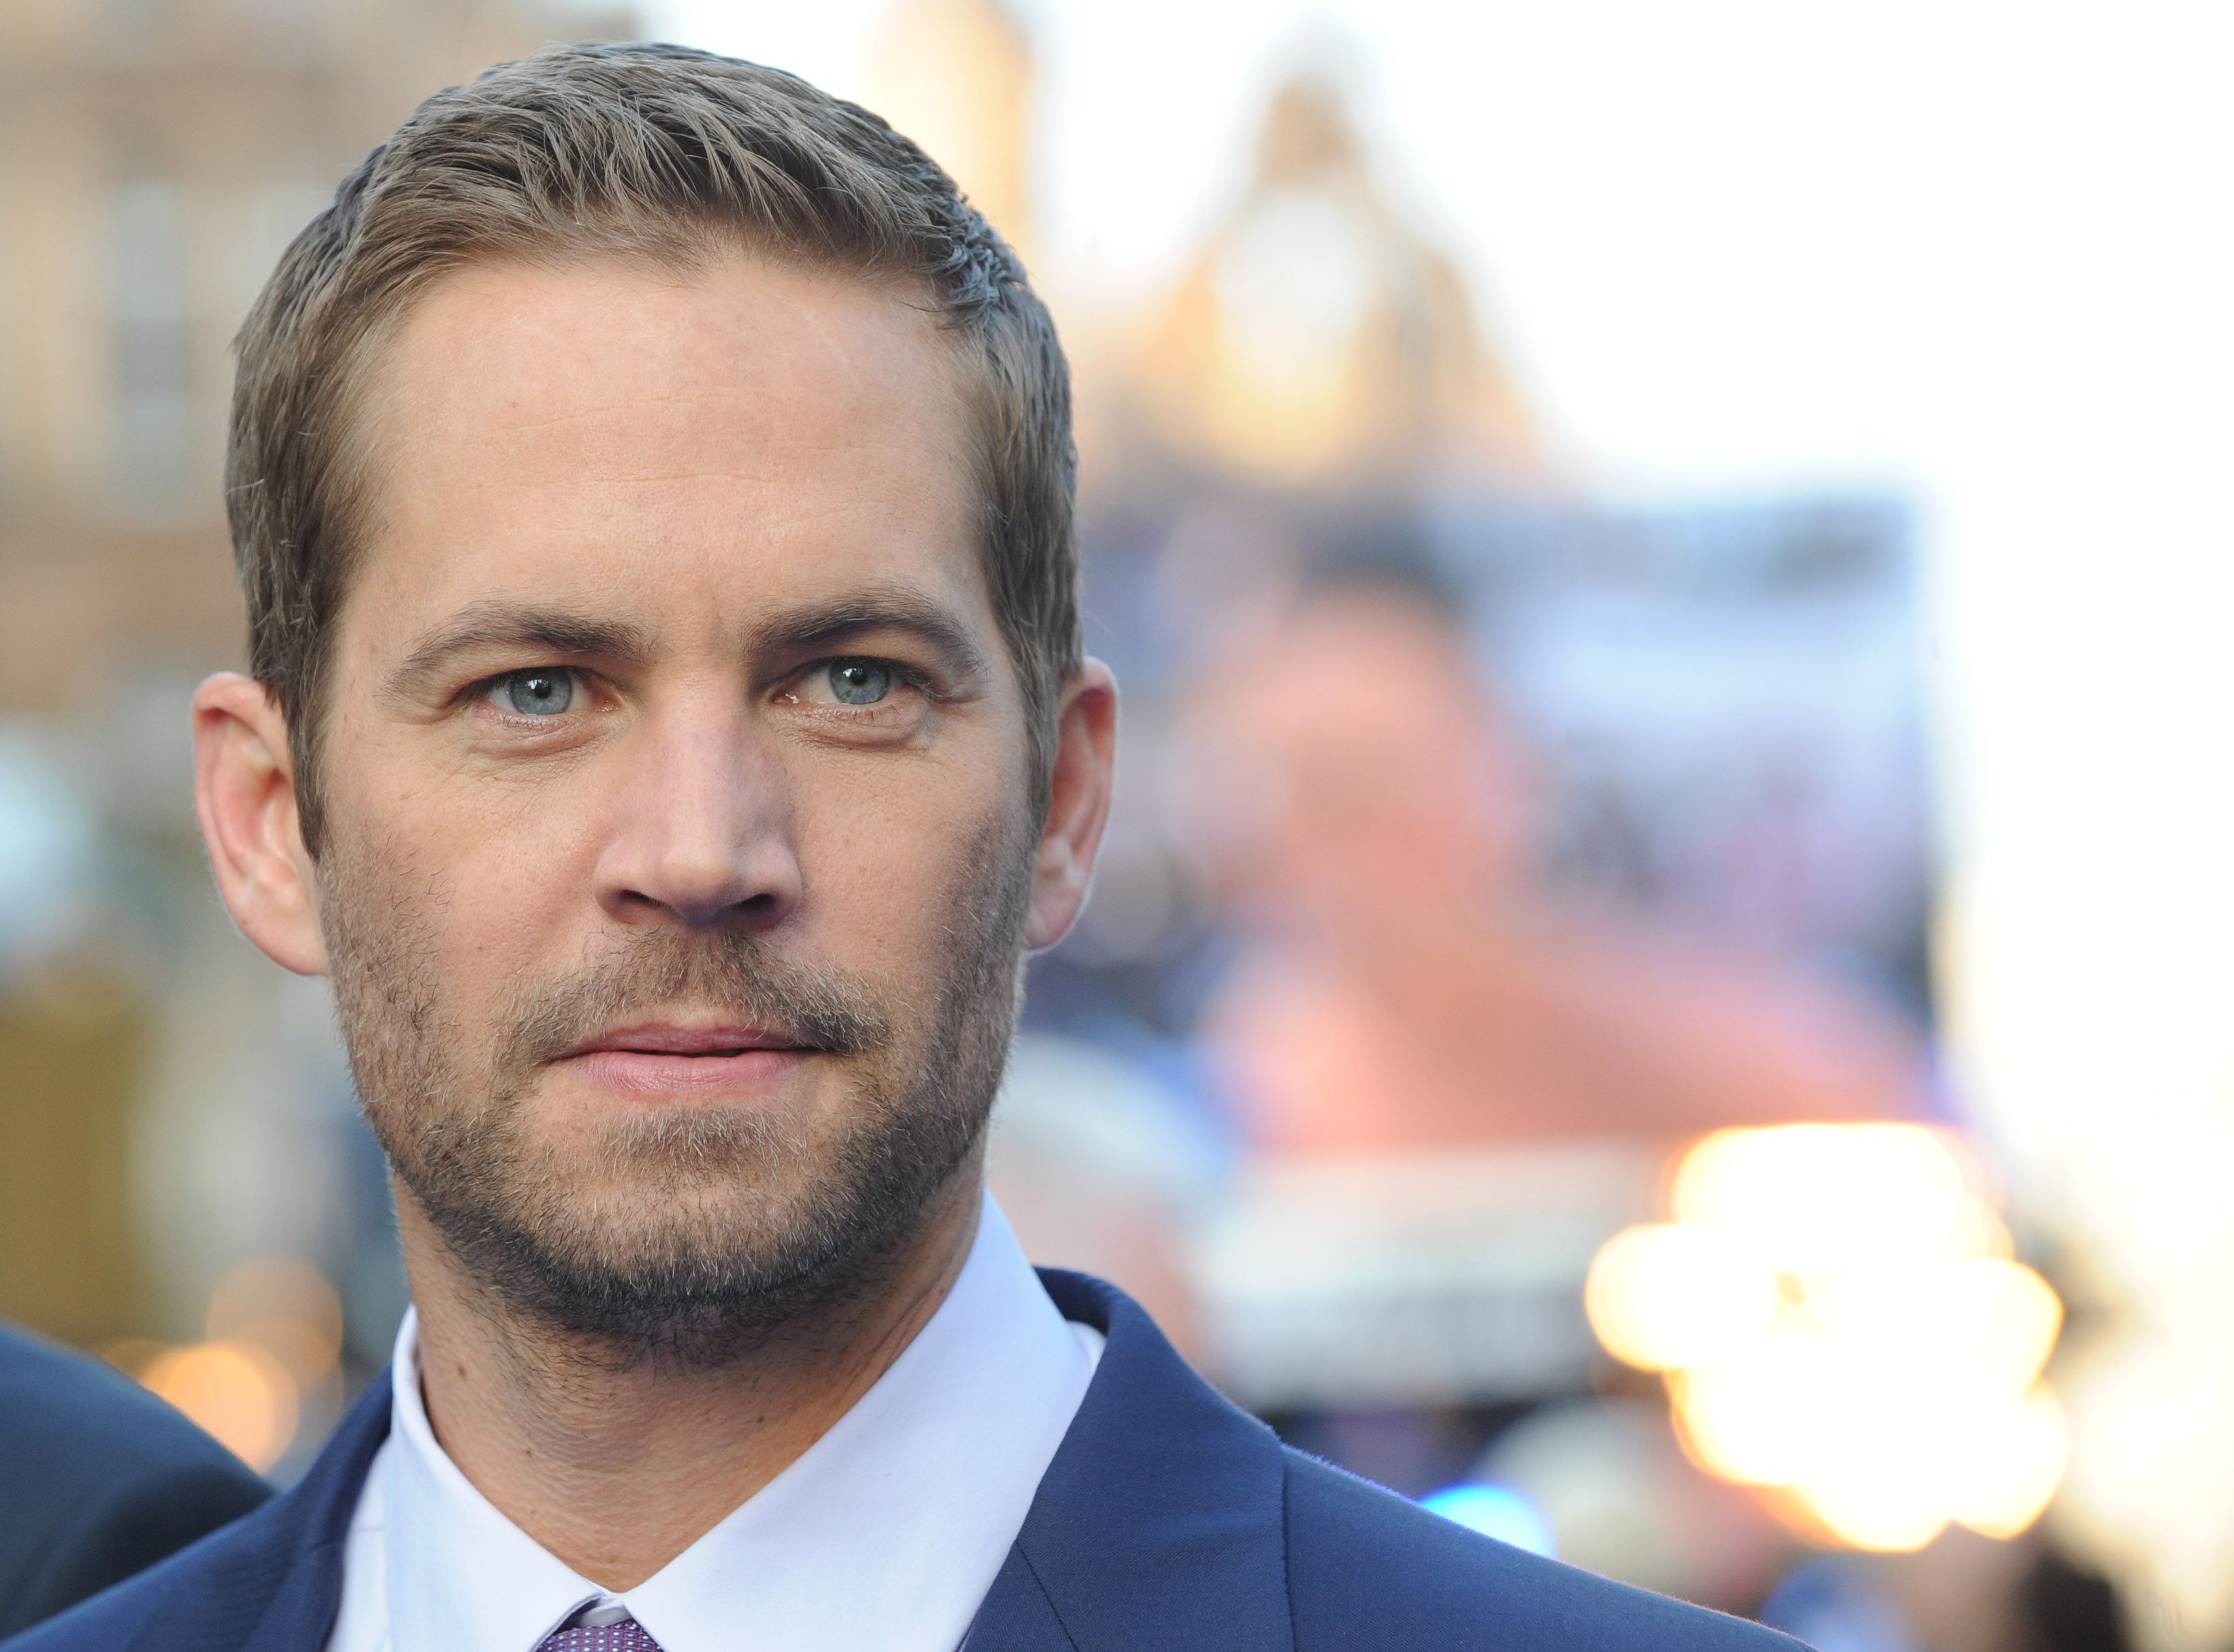 Paul Walker wanted to dedicate time to his daughter before she would grow up / Getty Images